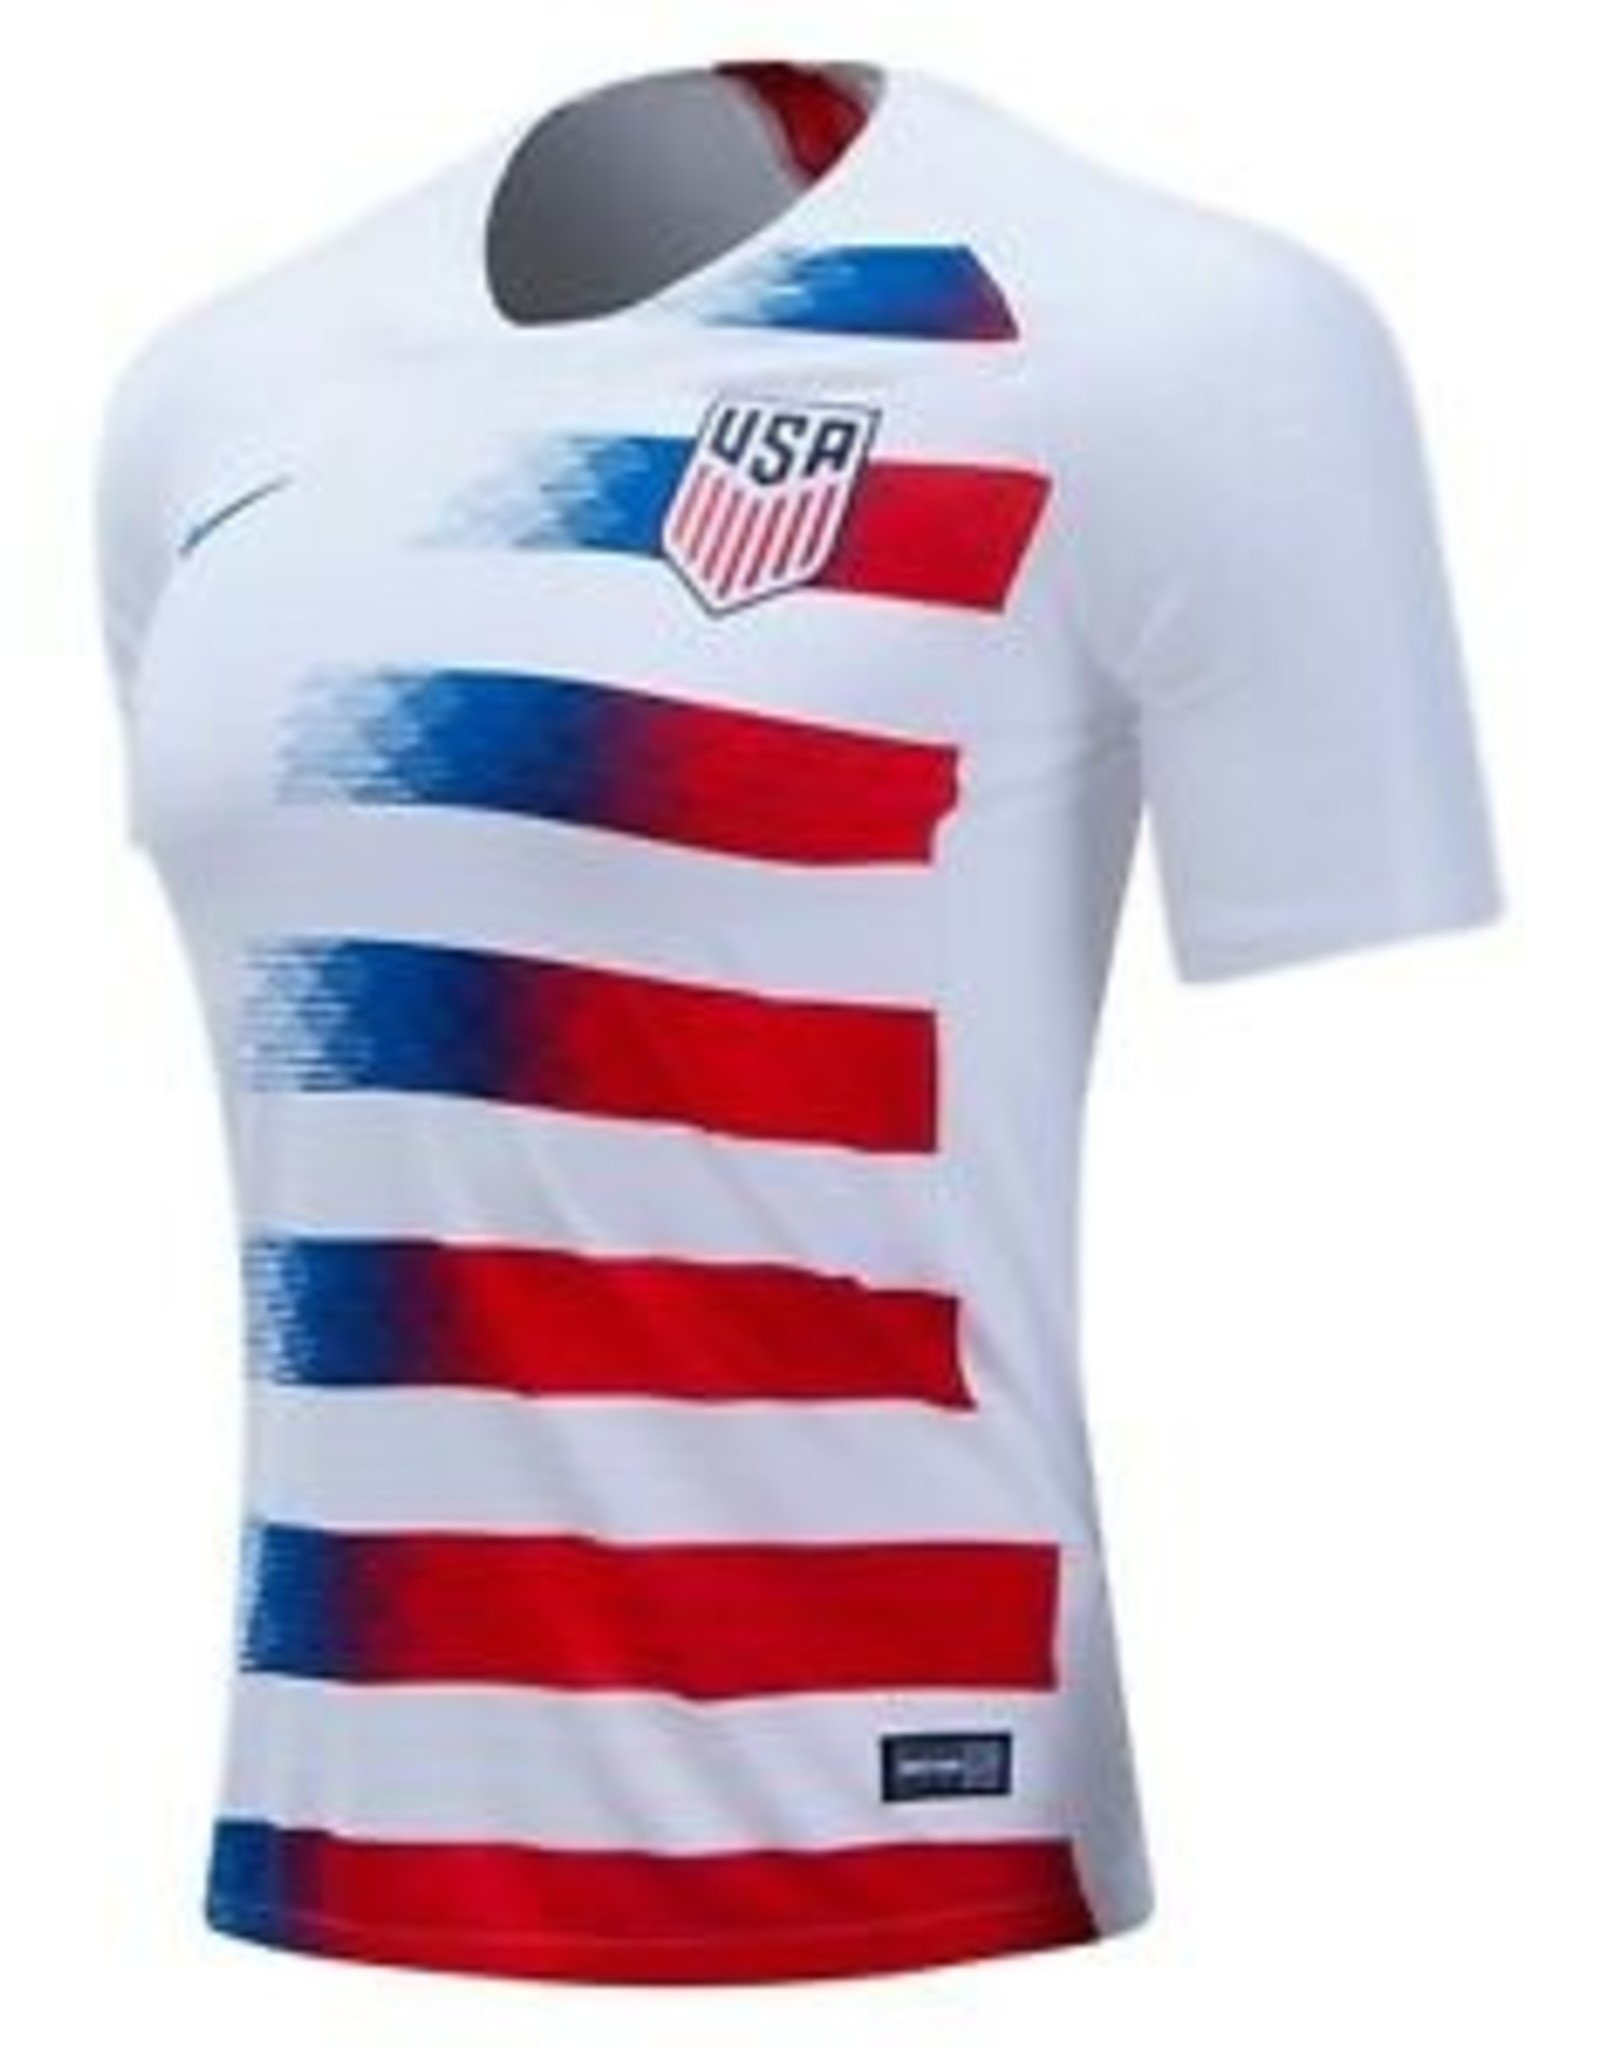 USA Home Jersey  (Youth) W Youth Med